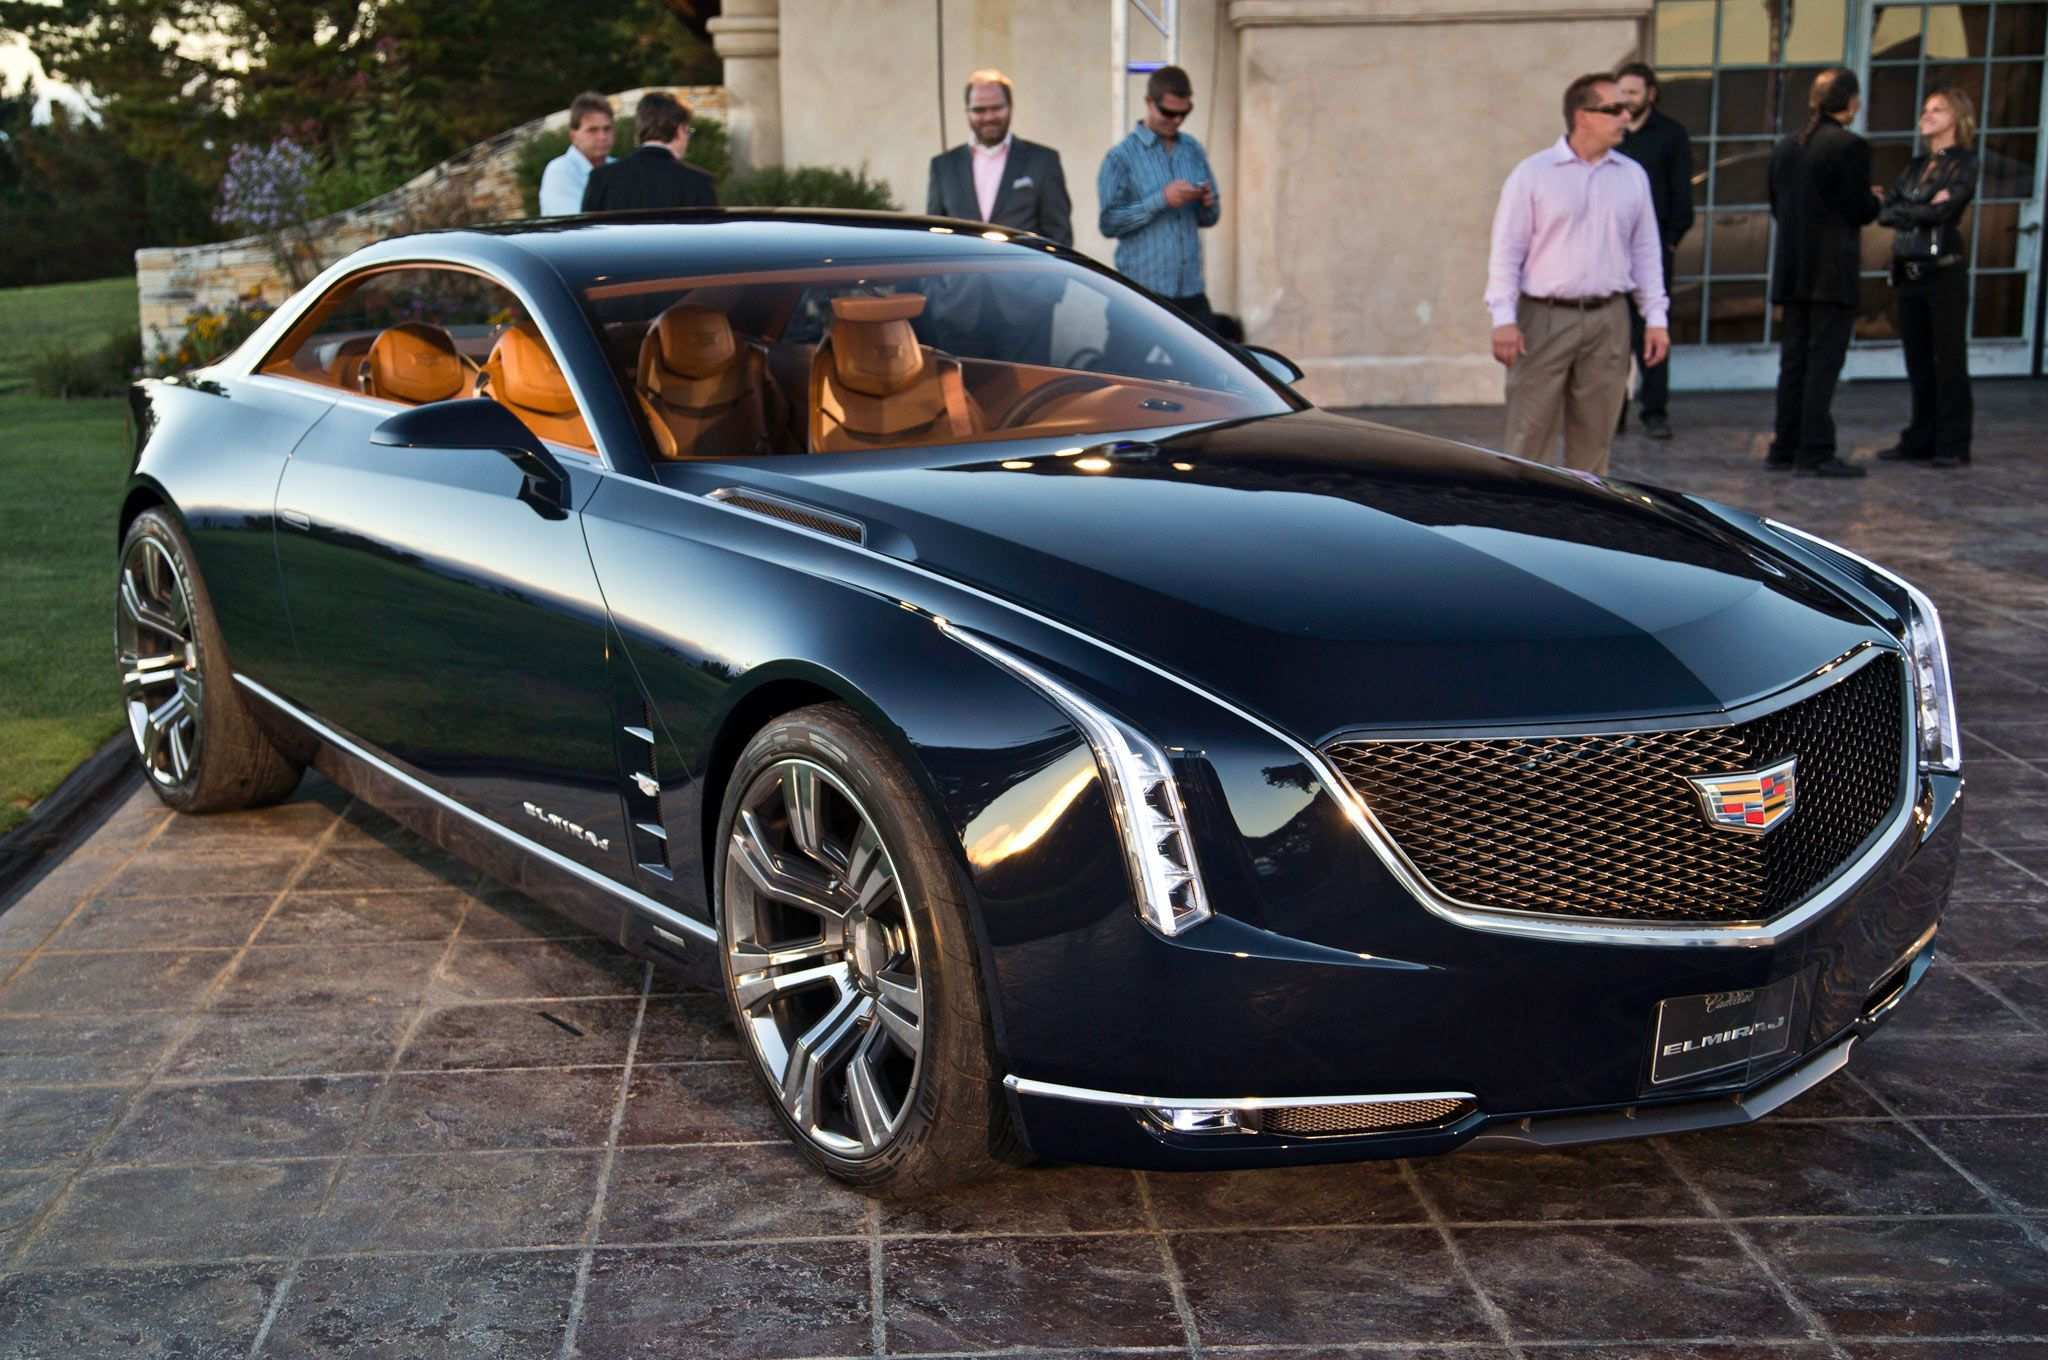 24 Concept of Elmiraj Cadillac Price First Drive with Elmiraj Cadillac Price